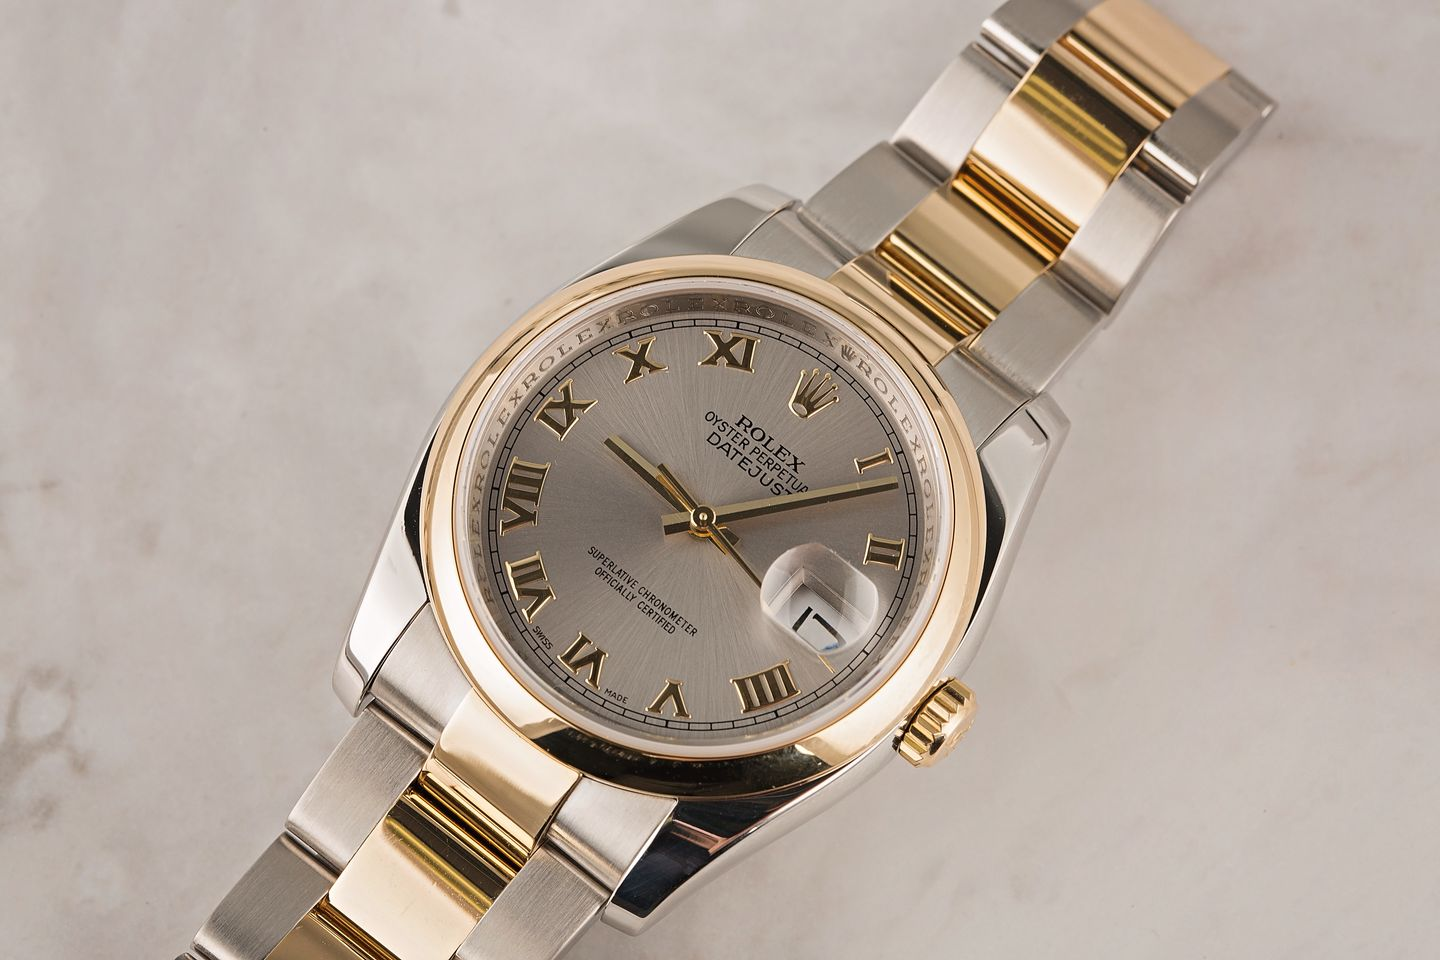 Rolex Oyster Perpetual Datejust Rolesor Two-Tone Steel and Gold 116203